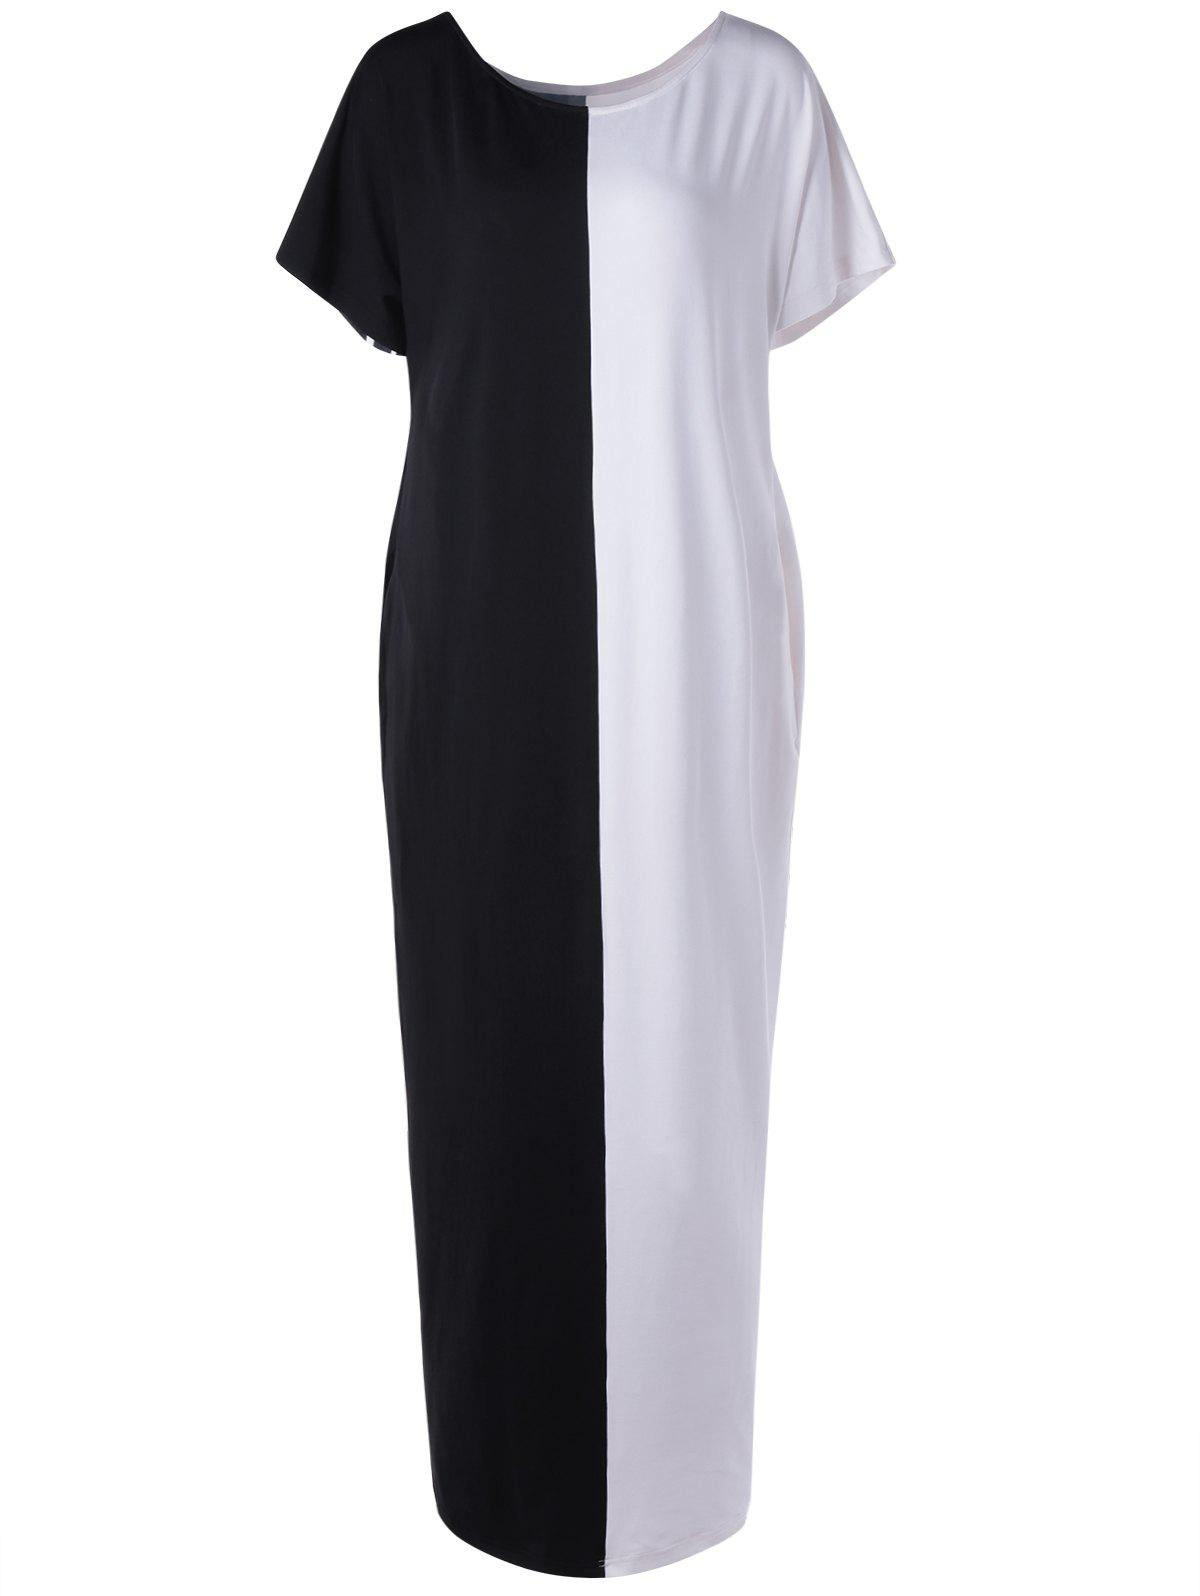 Stylish Black And White Color Block Dress For Woman - WHITE/BLACK L